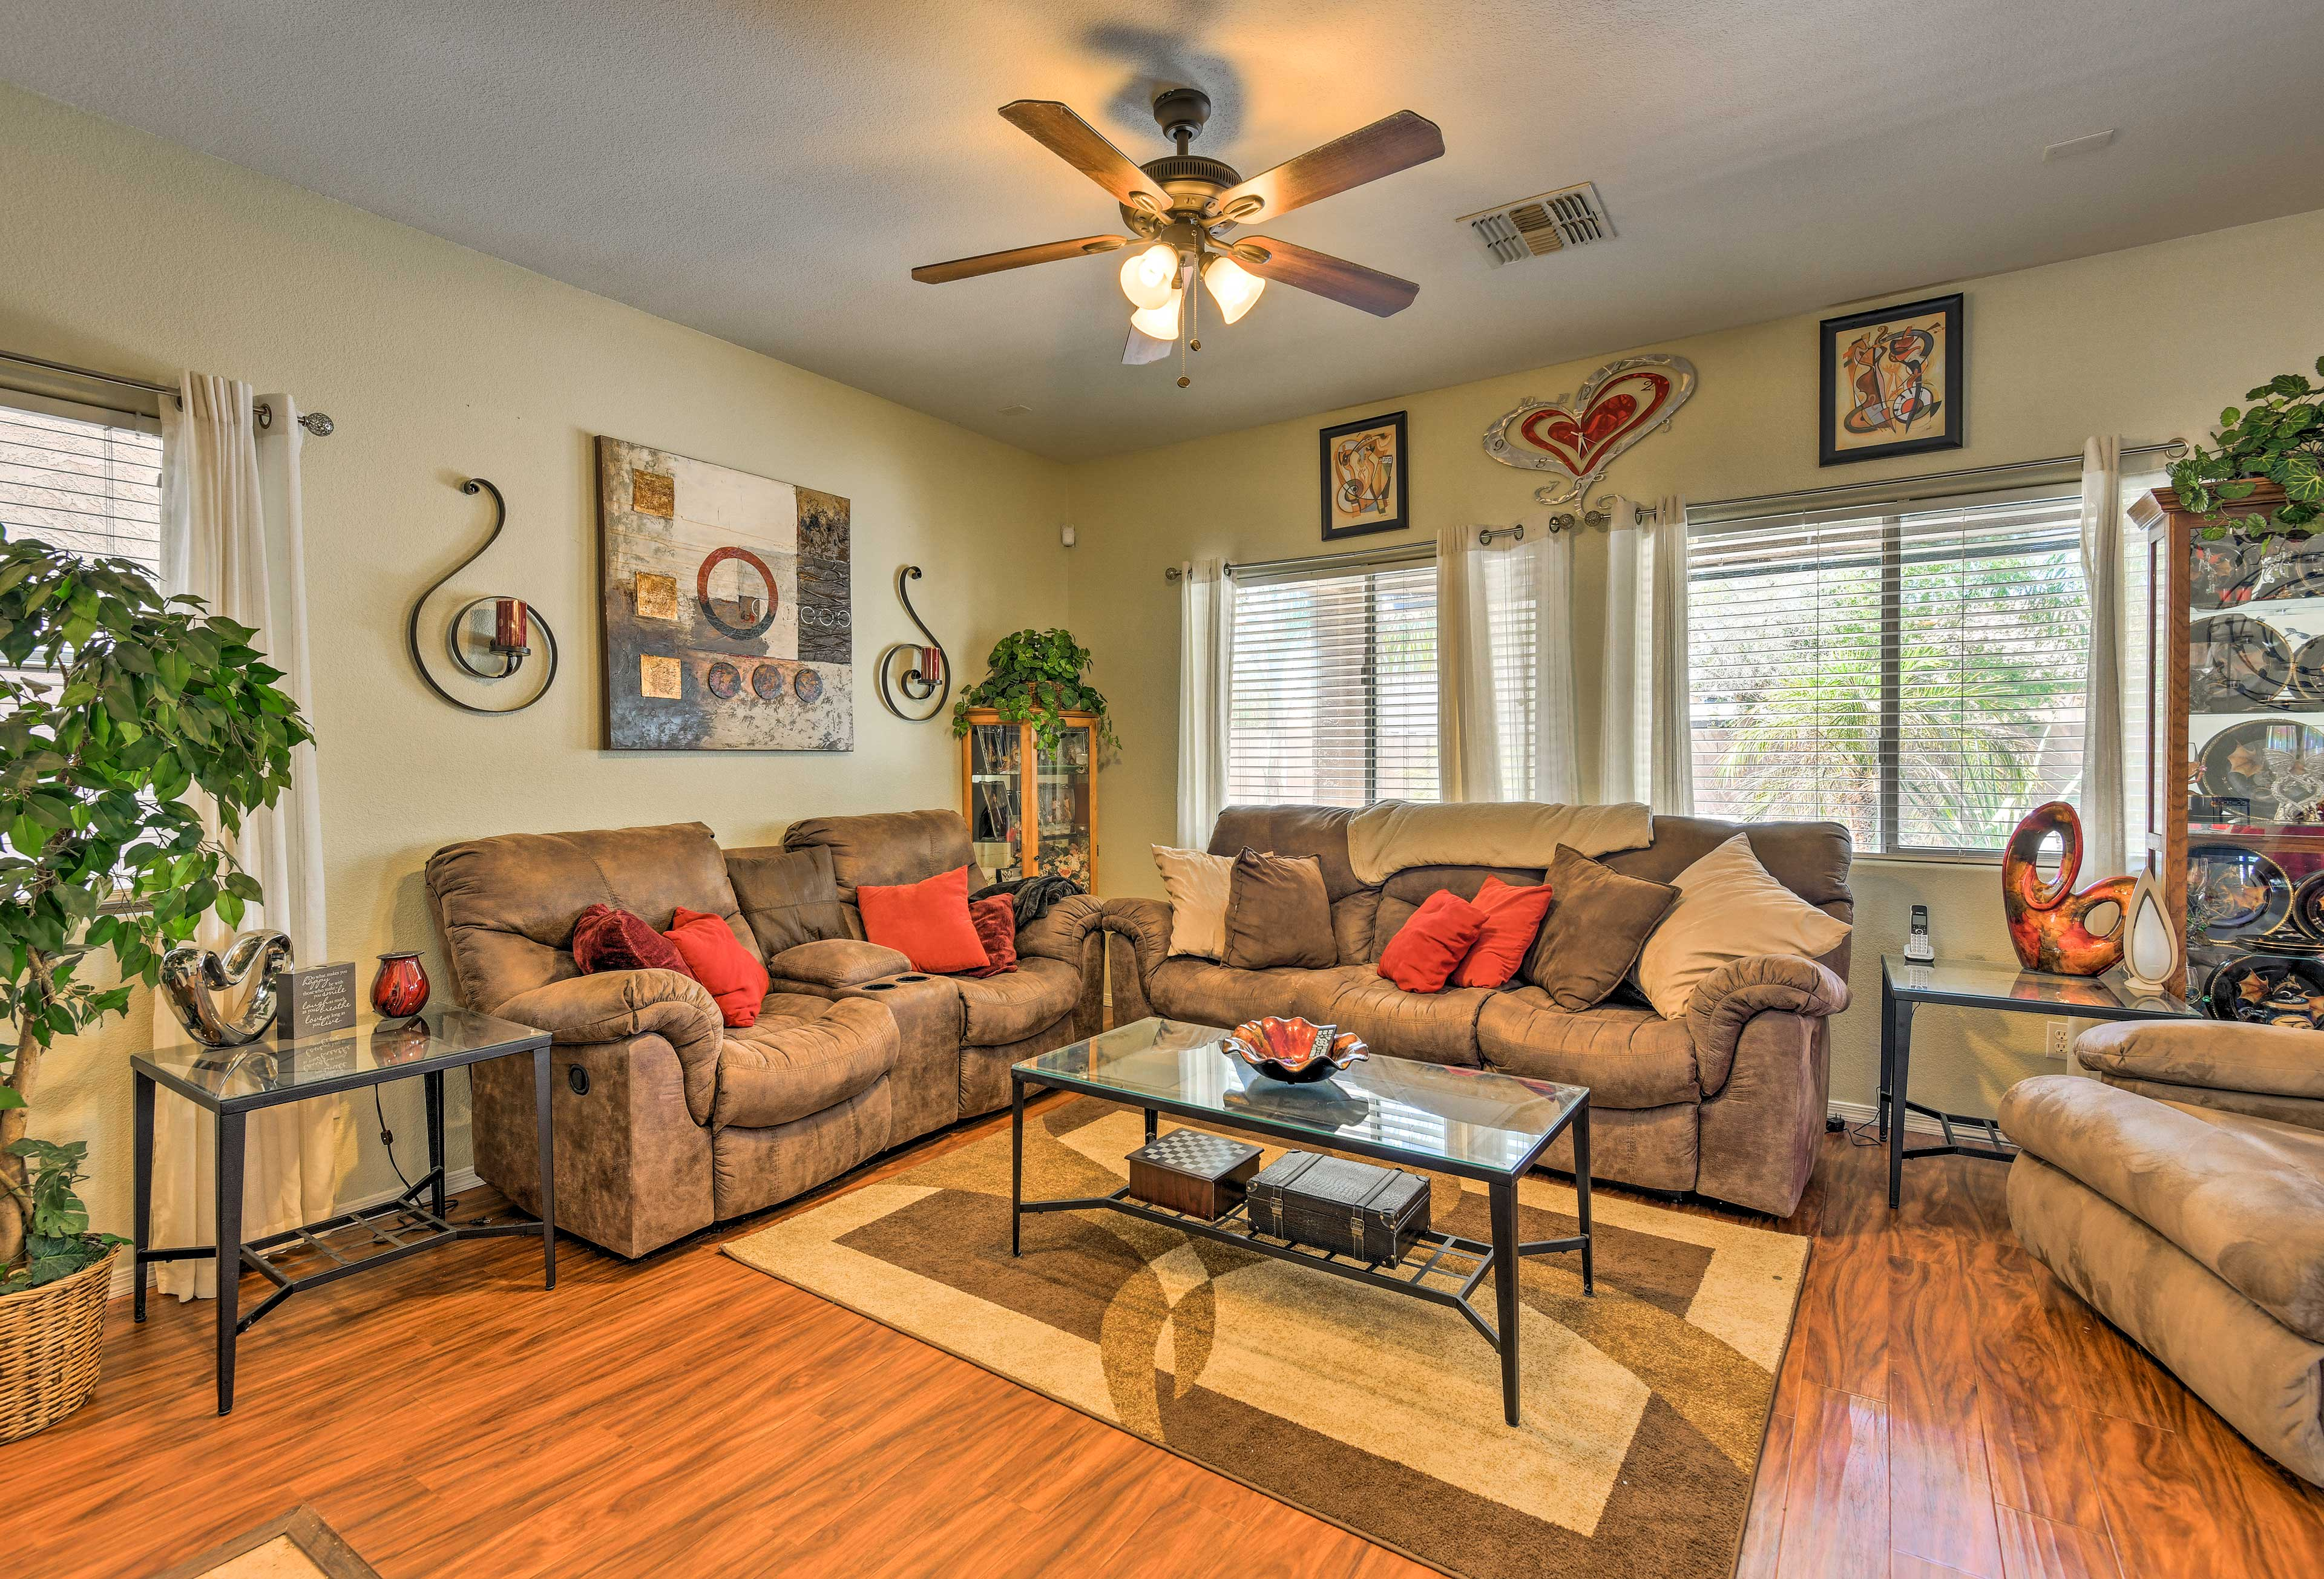 Gather as a group in the lavish living space complete with cozy couches!